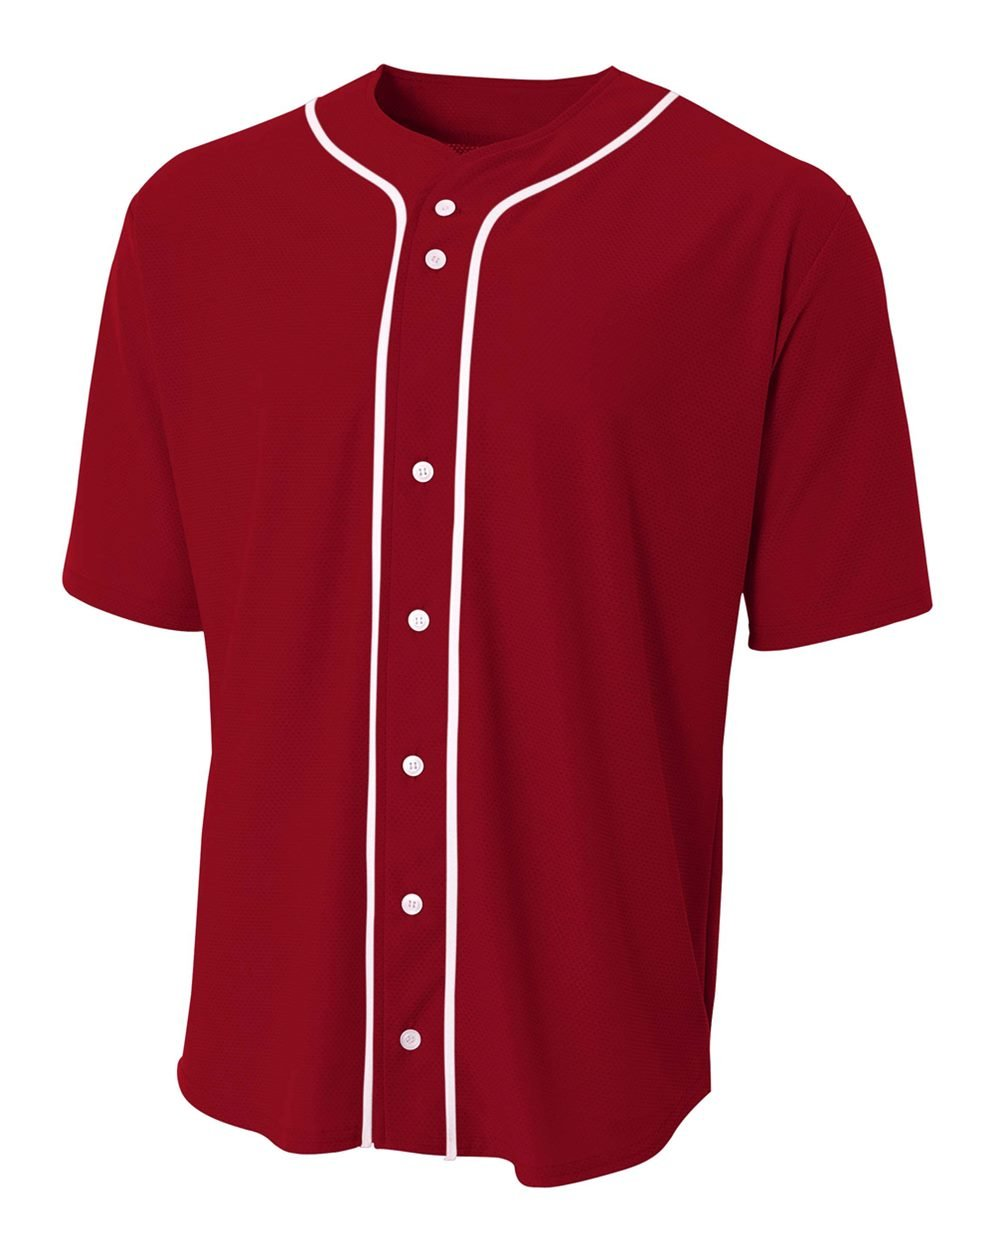 cab5b39c33ce Amazon.com   Baseball Full Button Custom or Blank Wicking Jersey (8 Uniform  Colors in 10 Youth   Adult Shirts Sizes)   Clothing